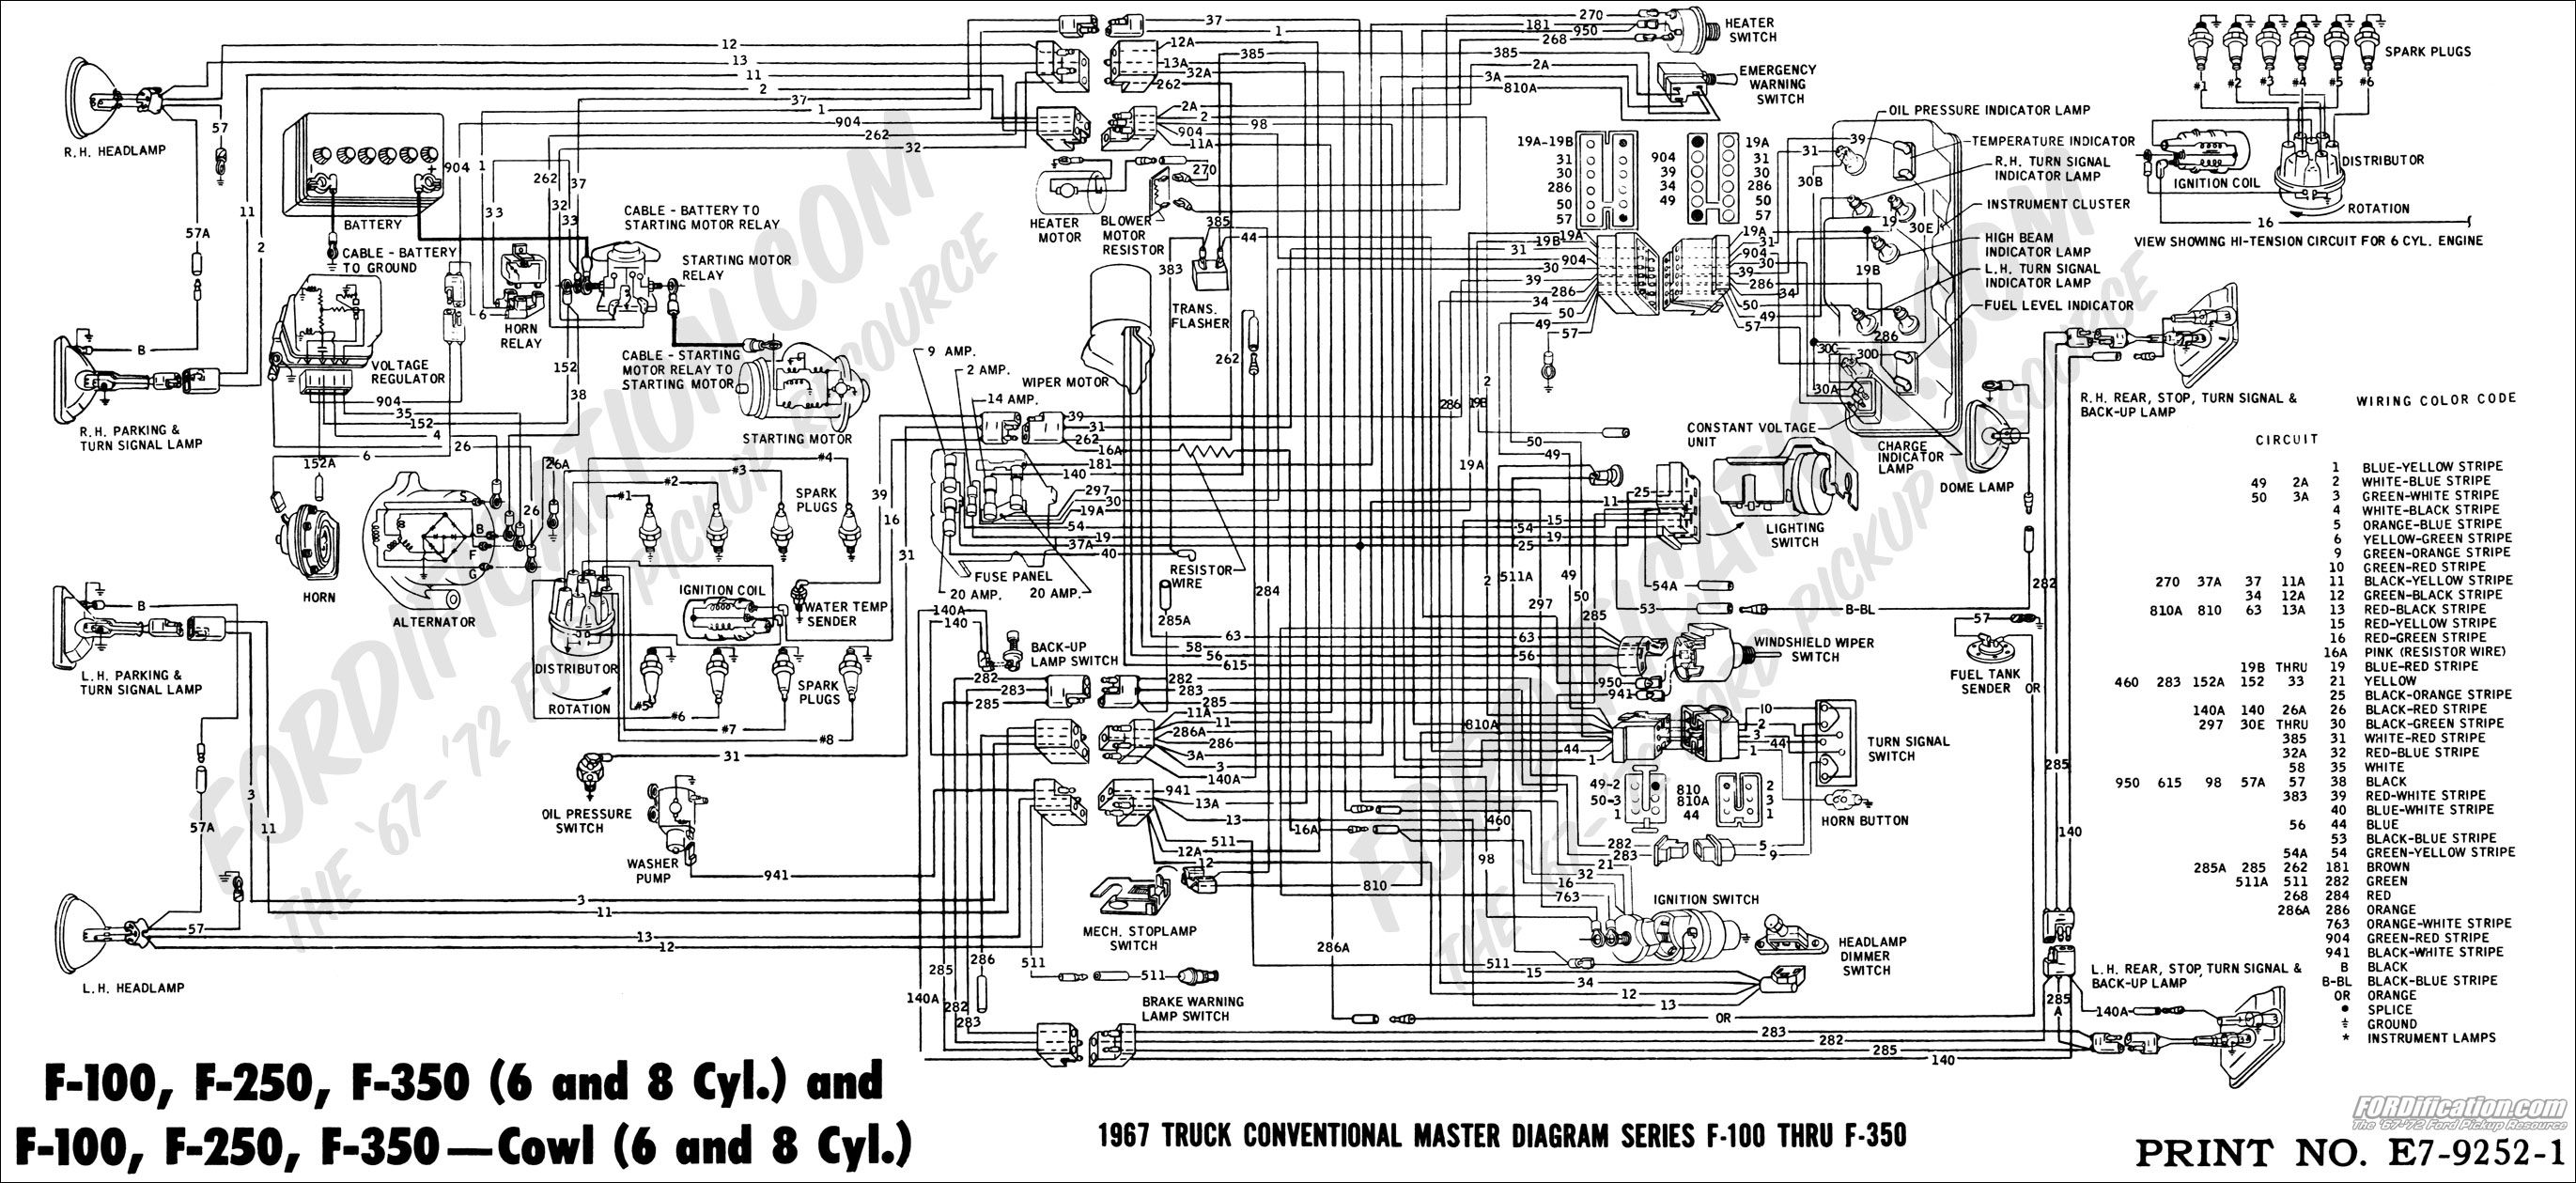 ford truck technical drawings and schematics section h wiring ford truck technical drawings and schematics section h wiring diagrams